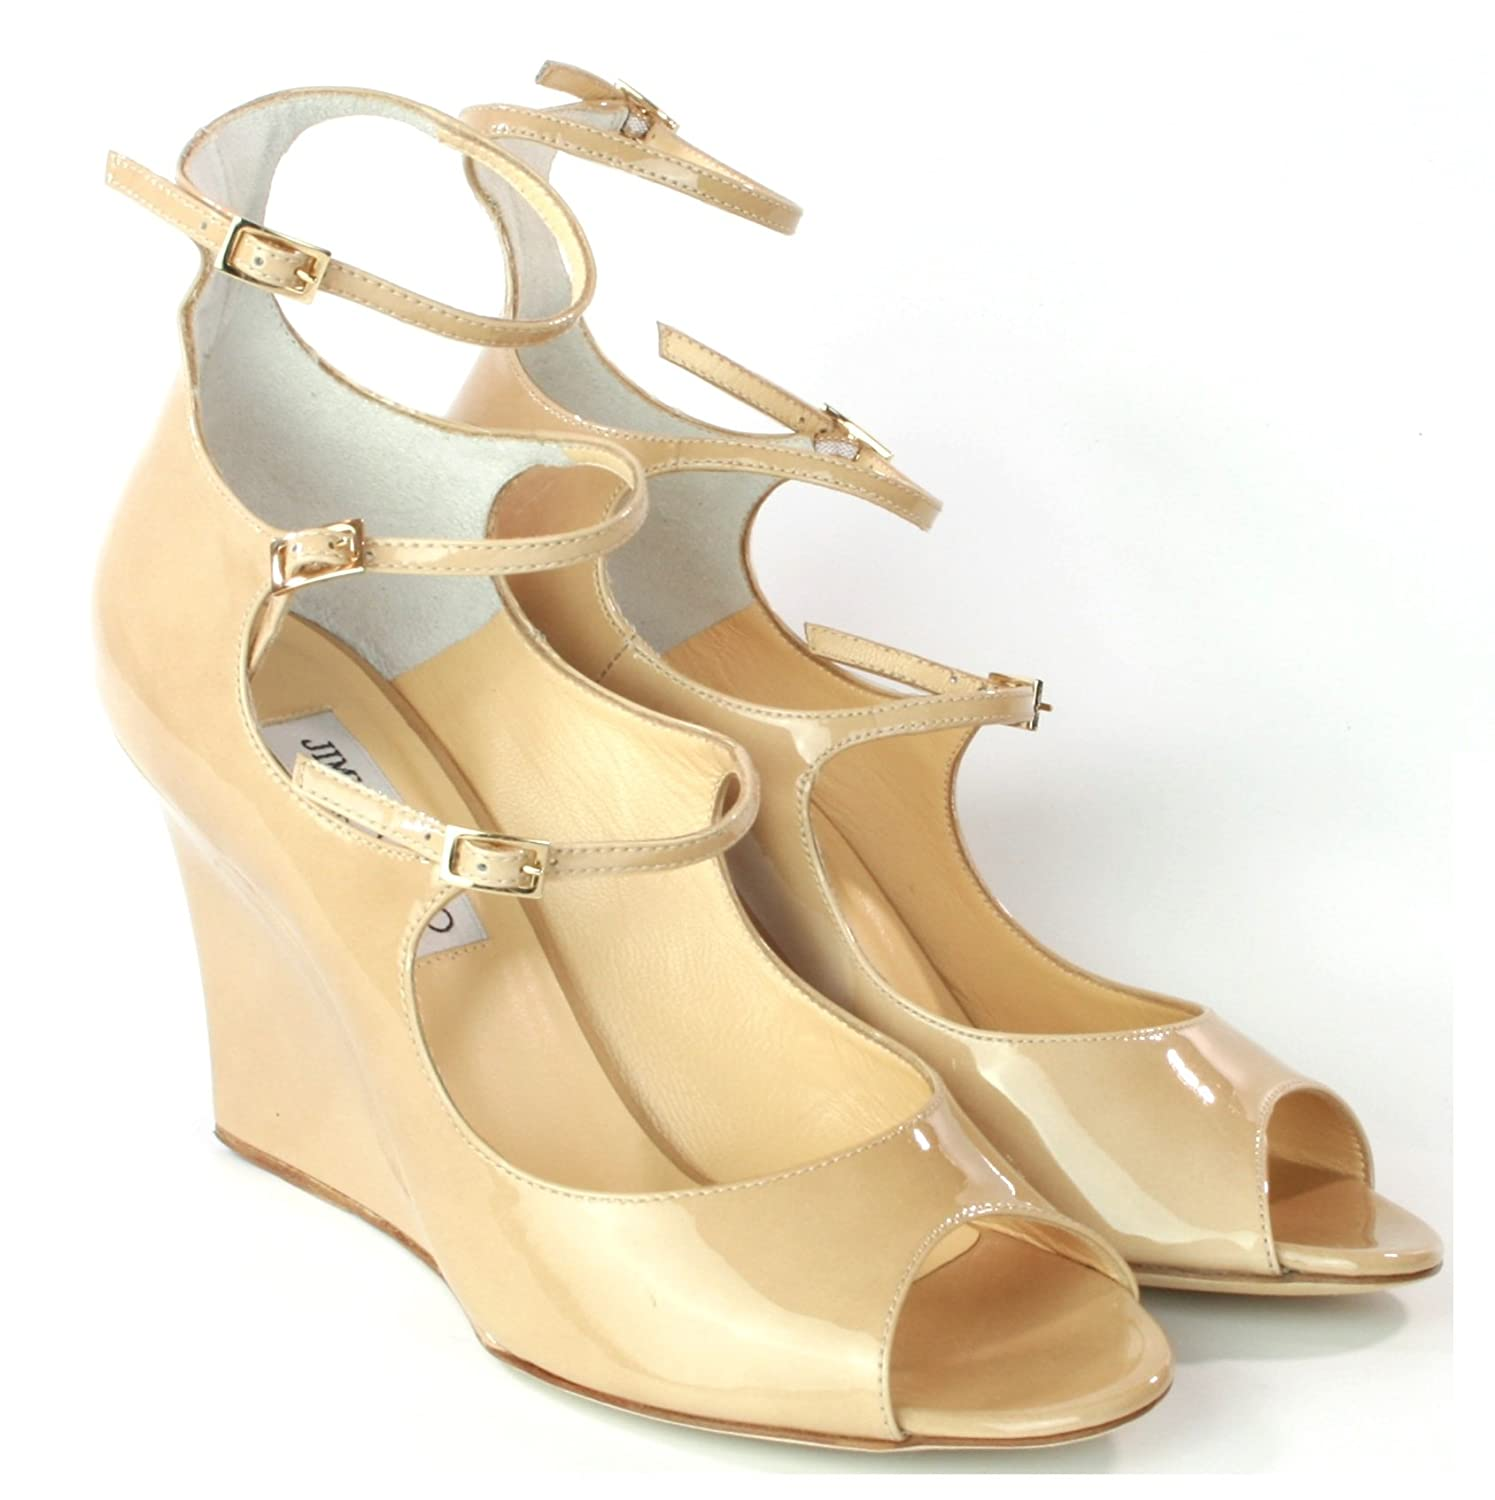 3b2d5c02e3f Jimmy Choo Gali Nude Patent Leather Shoes Size 5.5 RRP £450: Amazon ...